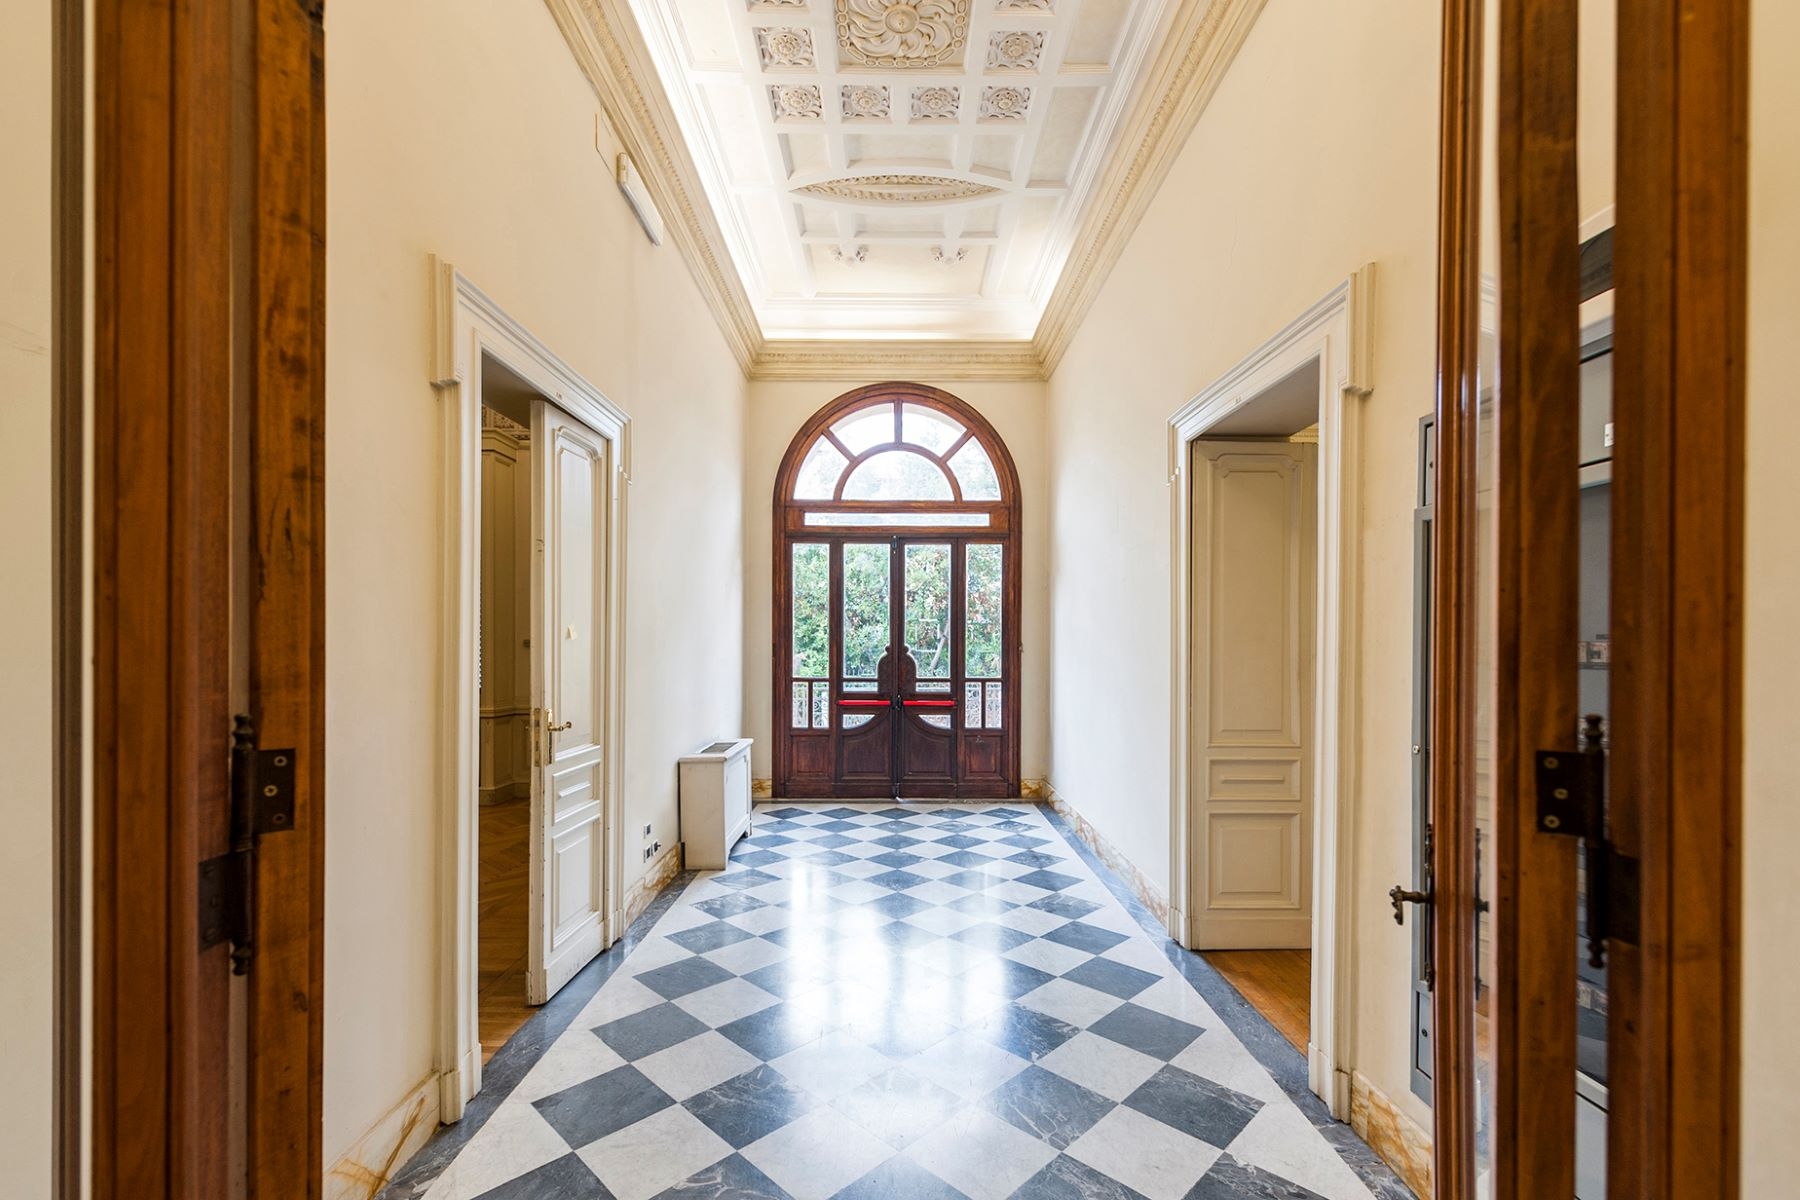 Additional photo for property listing at Majestic Art Deco Villa in Rome's City Center Via Piemonte Rome, Rome 00187 Italy